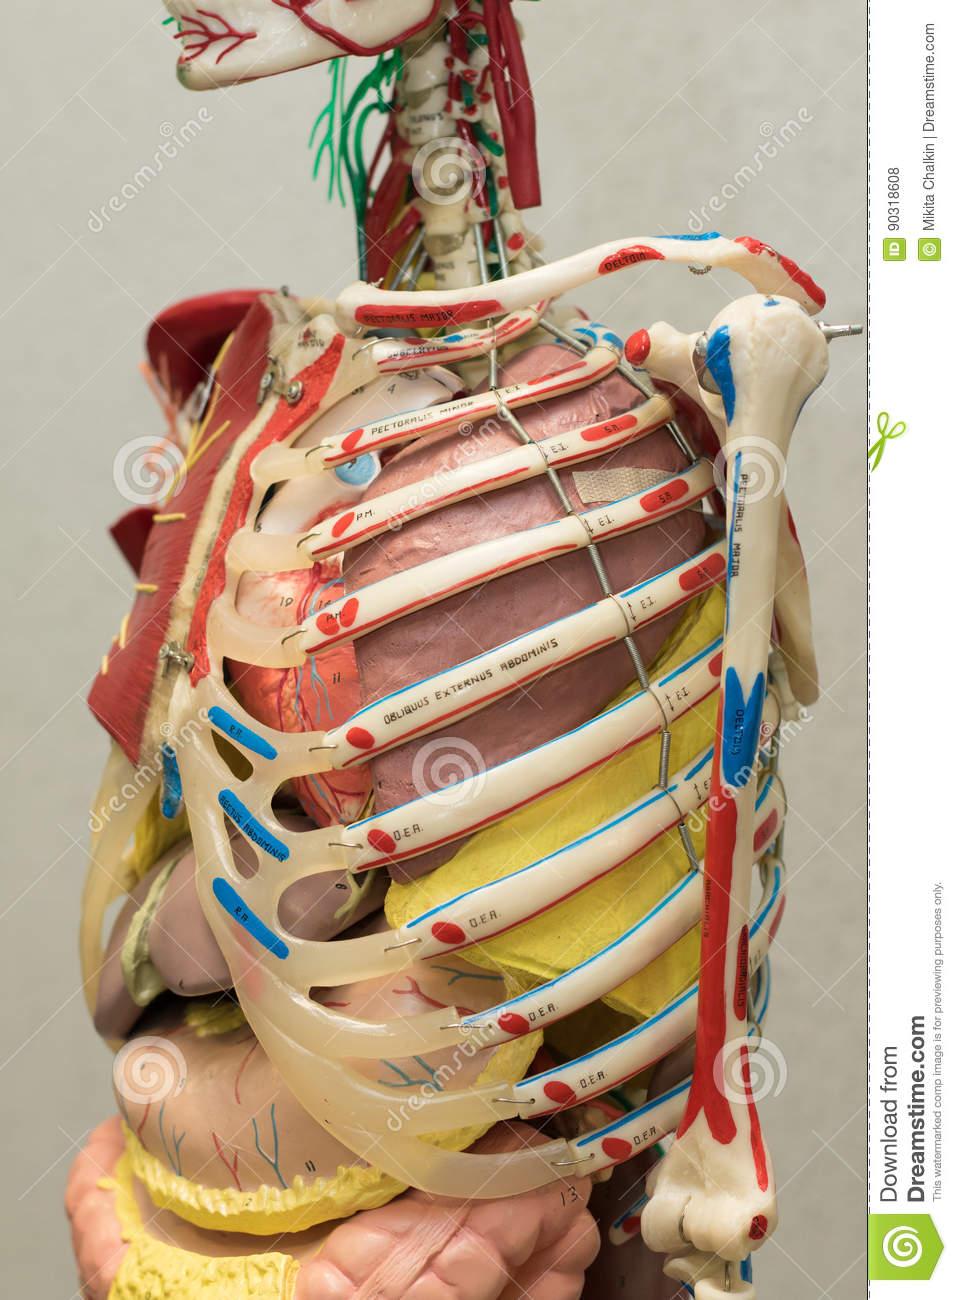 Anatomy Human Body Model Part Of Human Body Model With Organ System